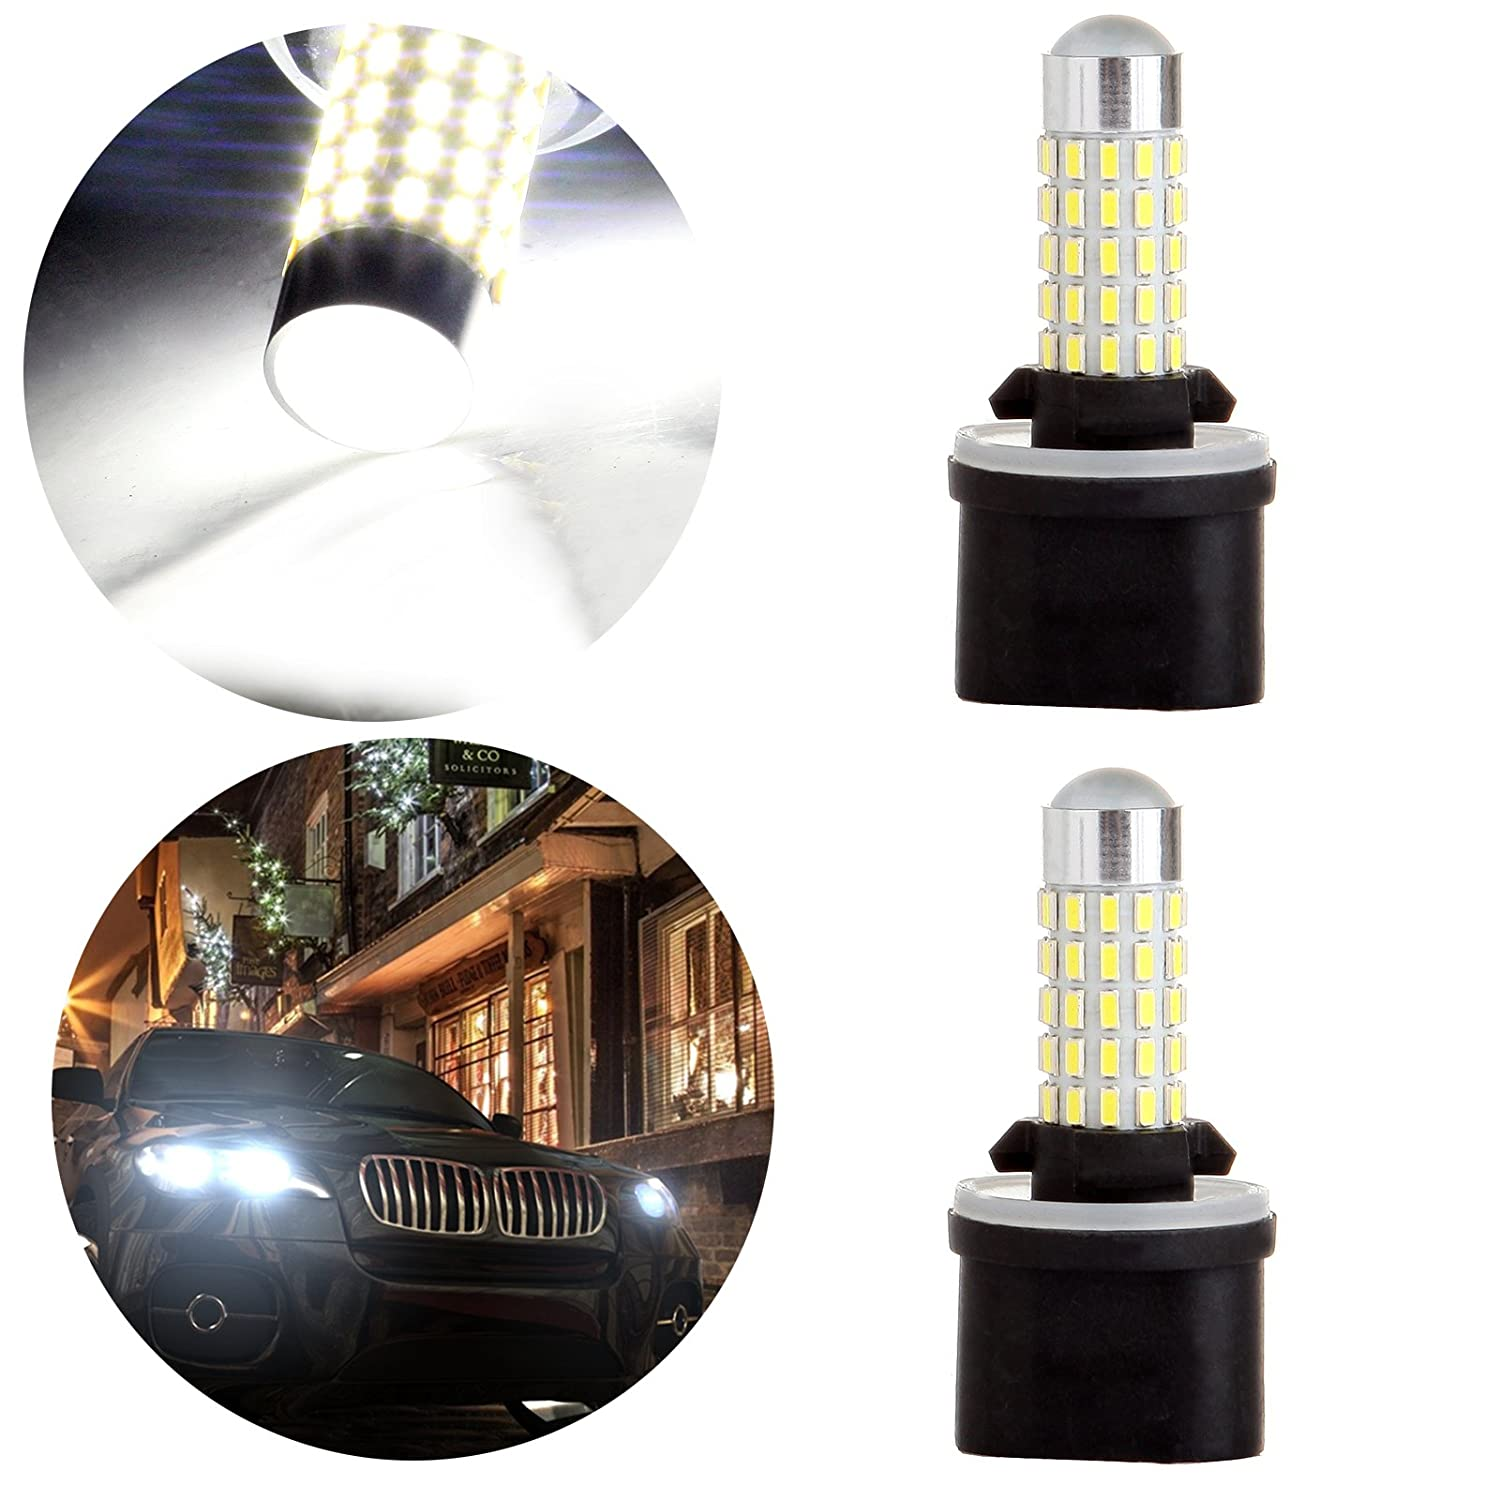 OCPTY 880 40W 66SMD HID White LED Light Bulb with Projector Replacement fit for Fog Light, 2Pack 800345-5209-1931562621